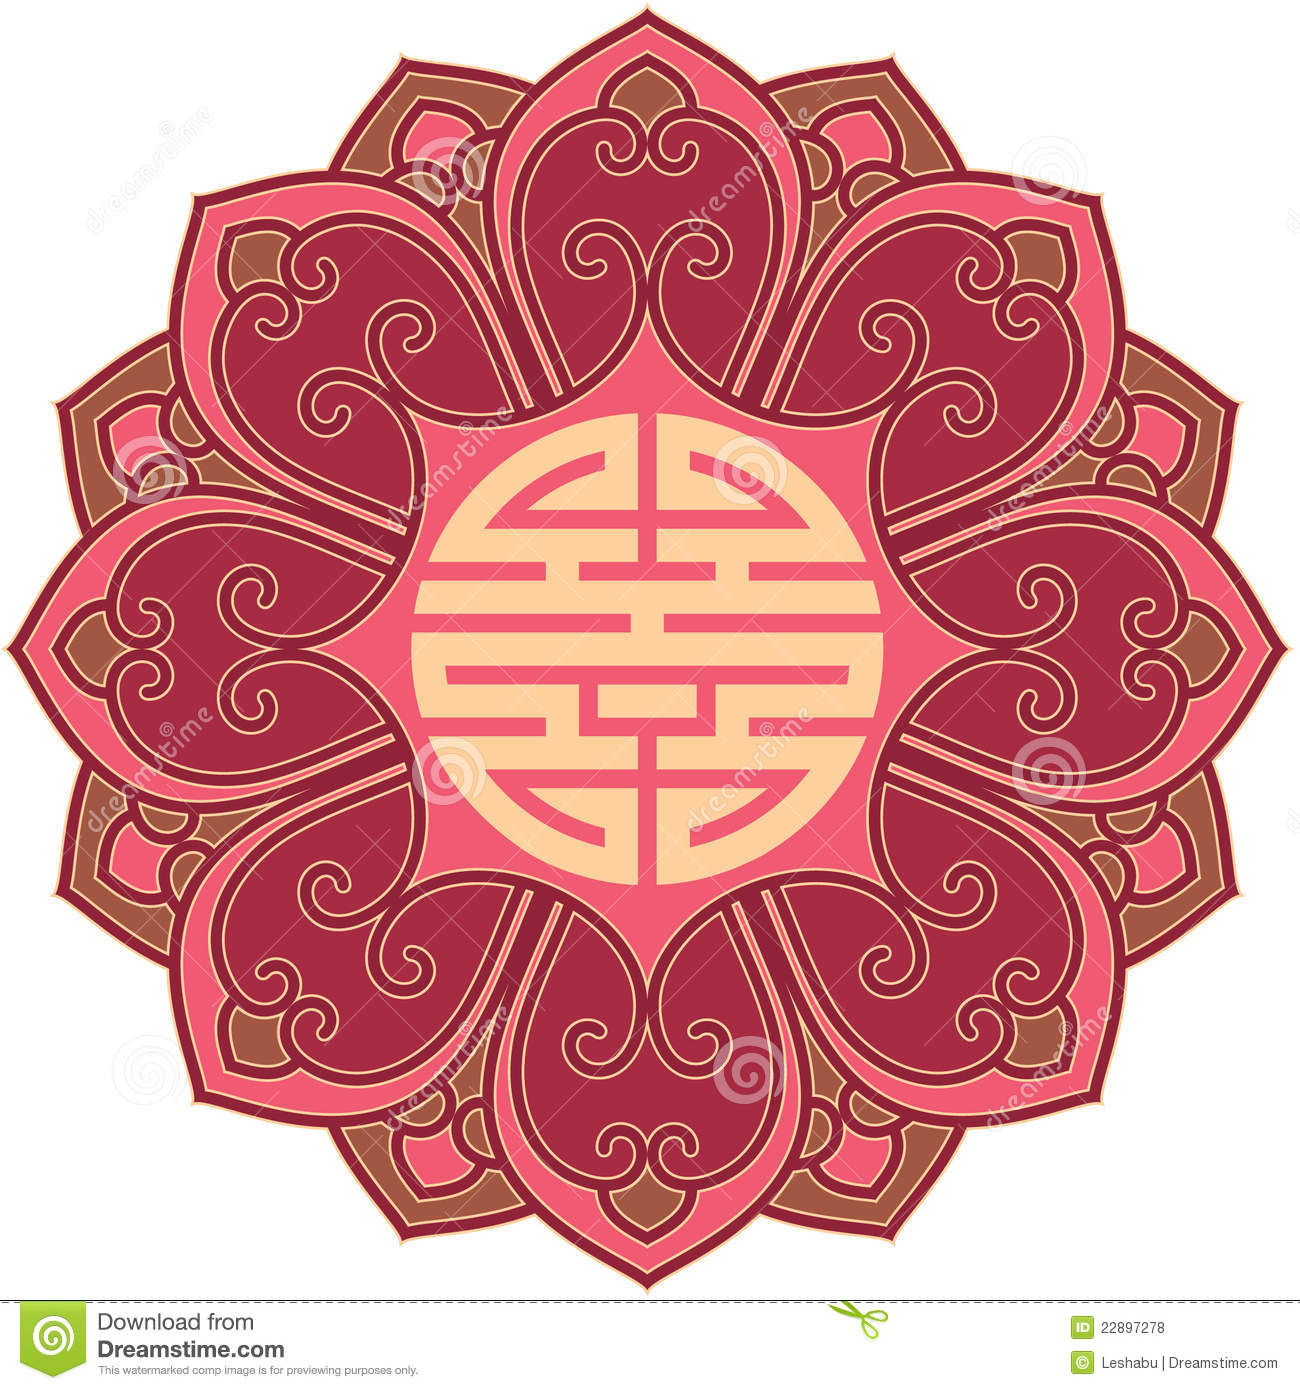 chinese flower design element royalty free stock photos  image, Natural flower